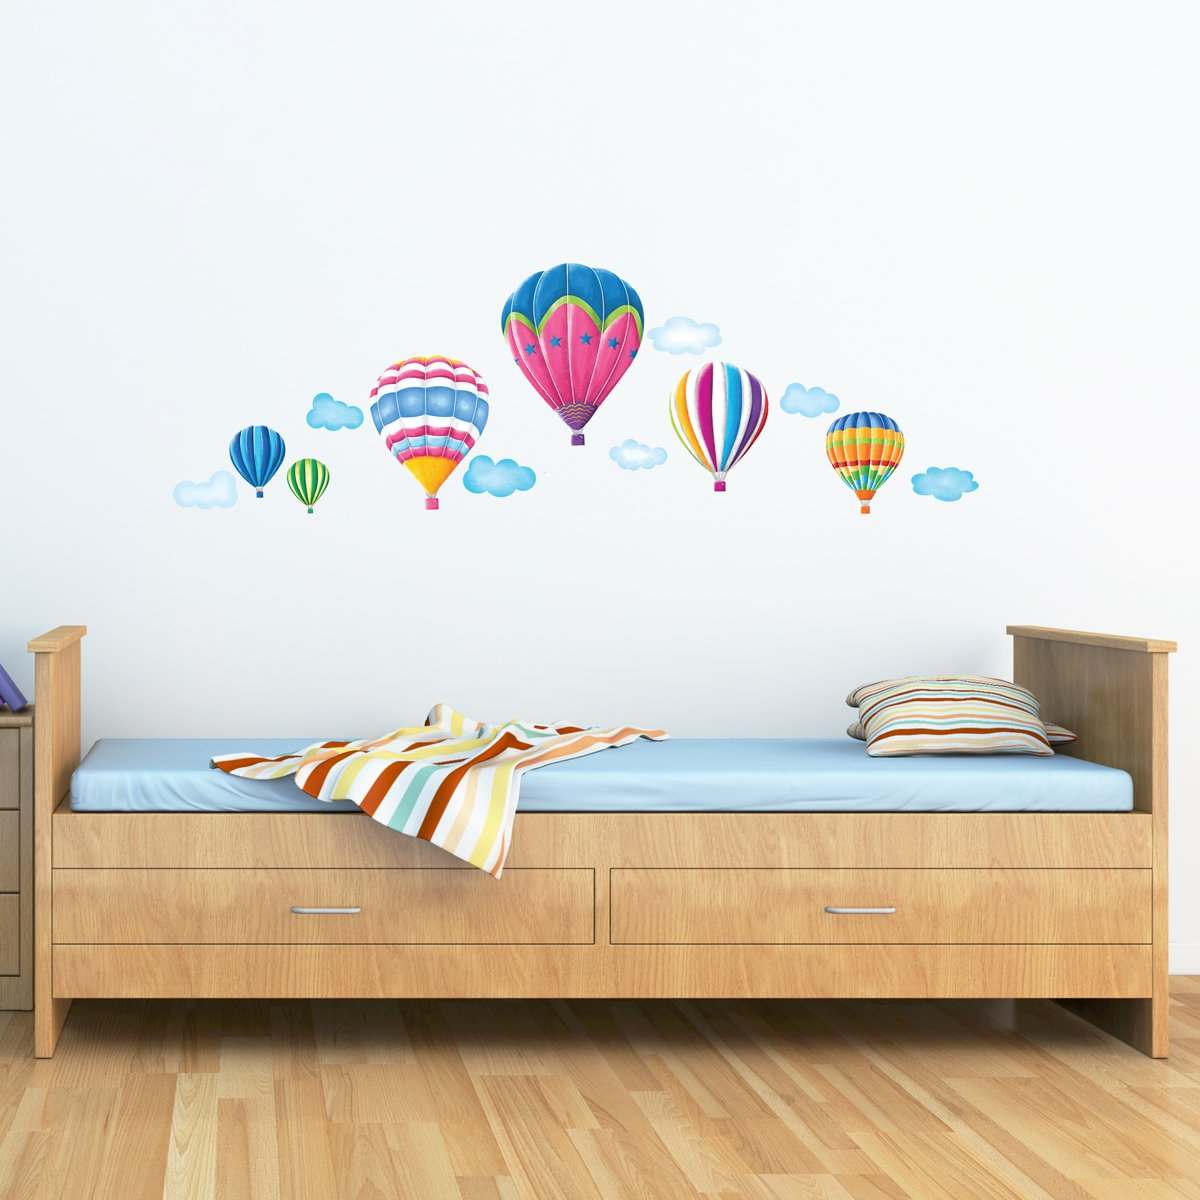 Decowall dw 1301ac 6 hot air balloons in the sky kids wall decowall dw 1301ac 6 hot air balloons in the sky kids wall stickers wall decals peel and stick removable wall stickers for kids nursery bedroom living room amipublicfo Choice Image